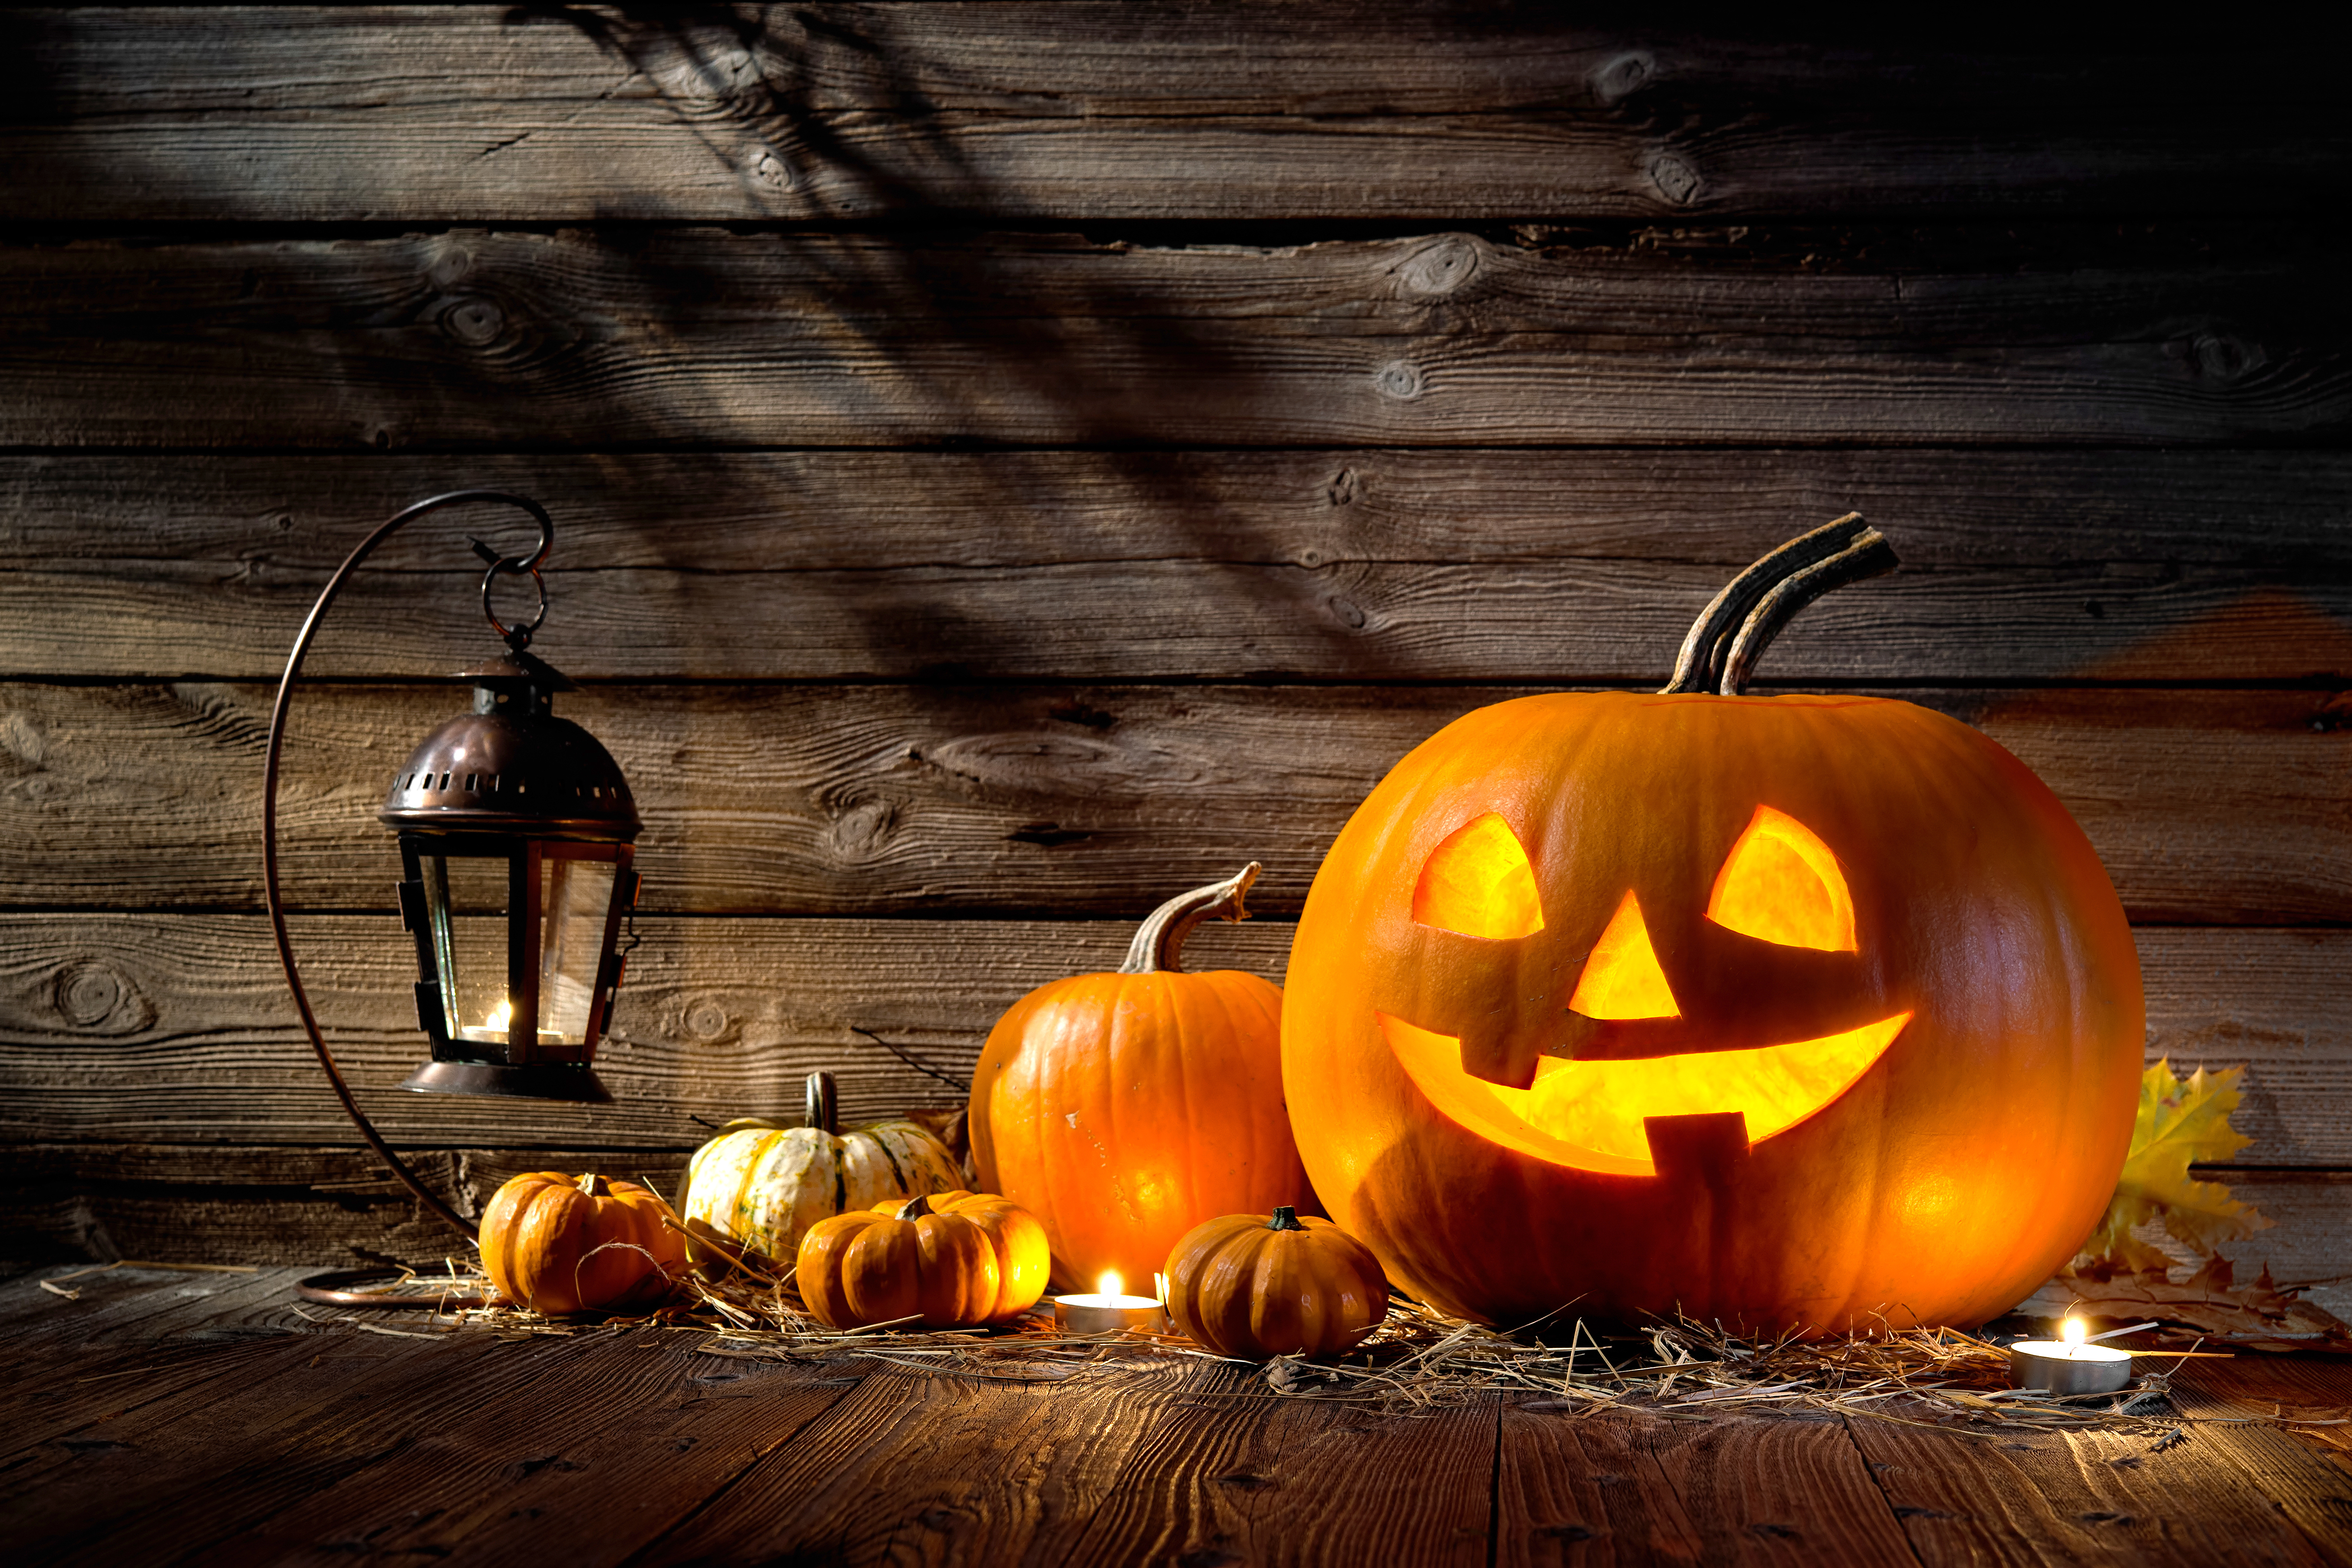 Halloween can be celebrated in luxury